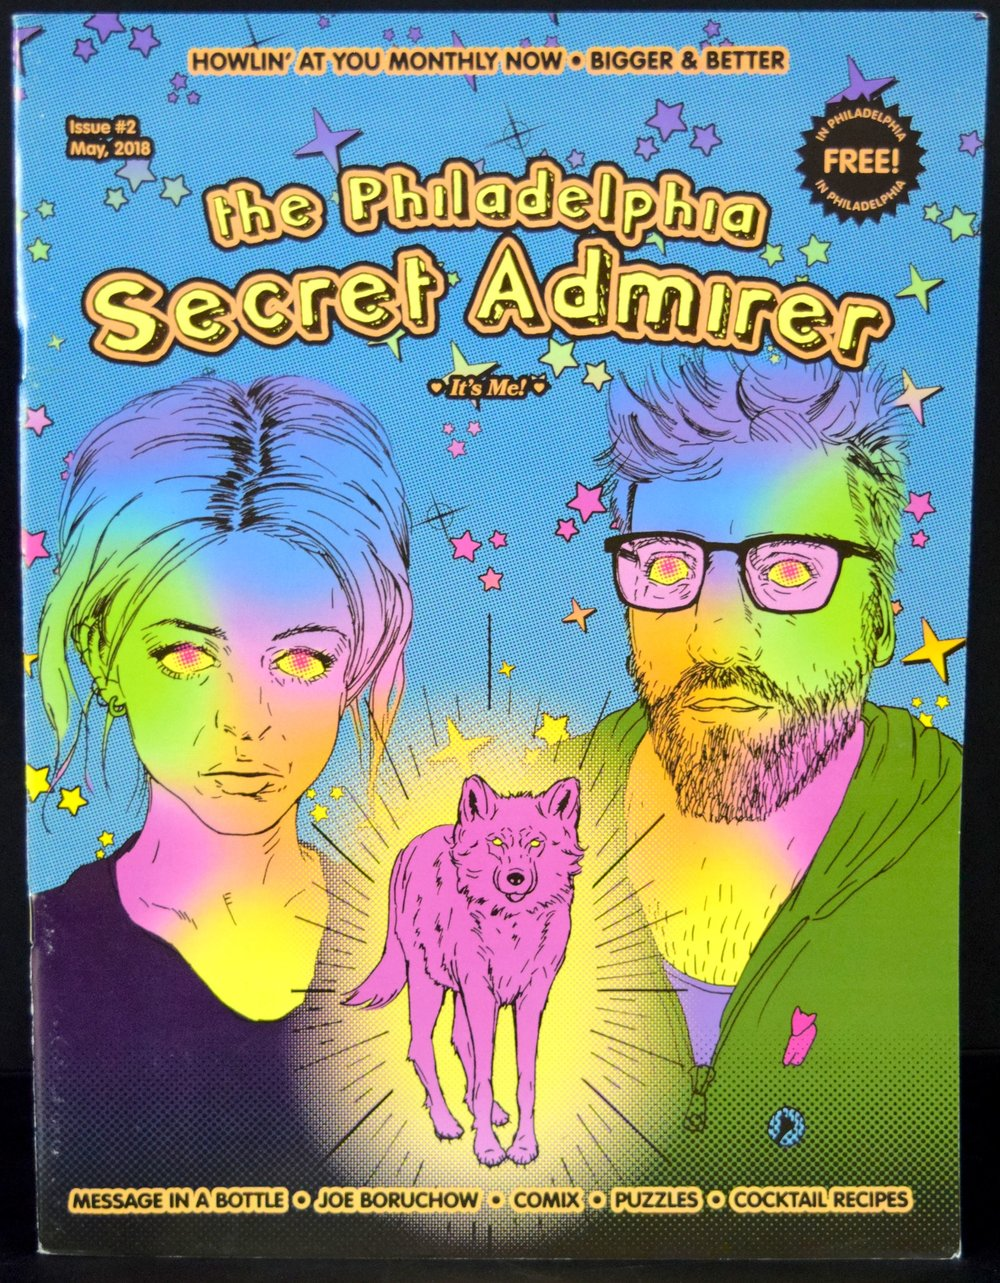 The Philadelphia Secret Admirer #2, cover by Rachel Pfeffer .